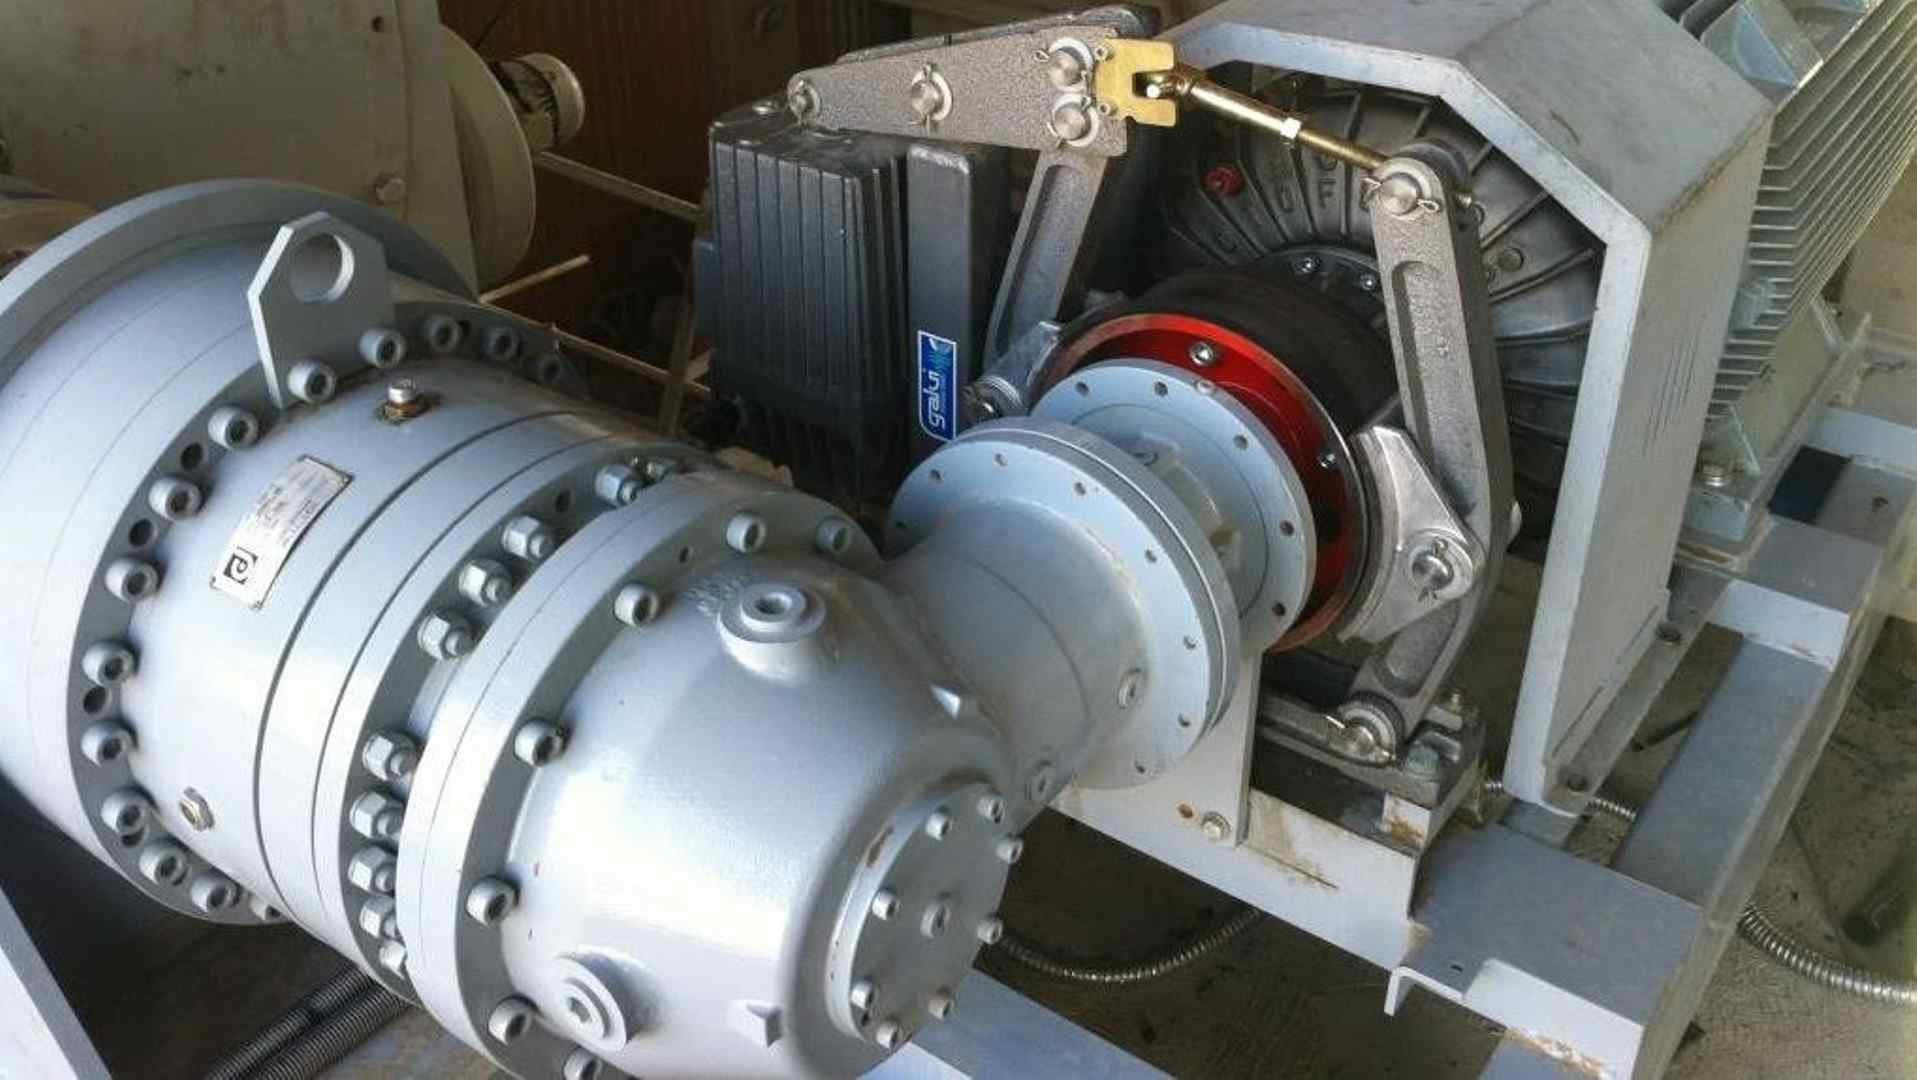 Auxiliary drive for planetary gear unit with break